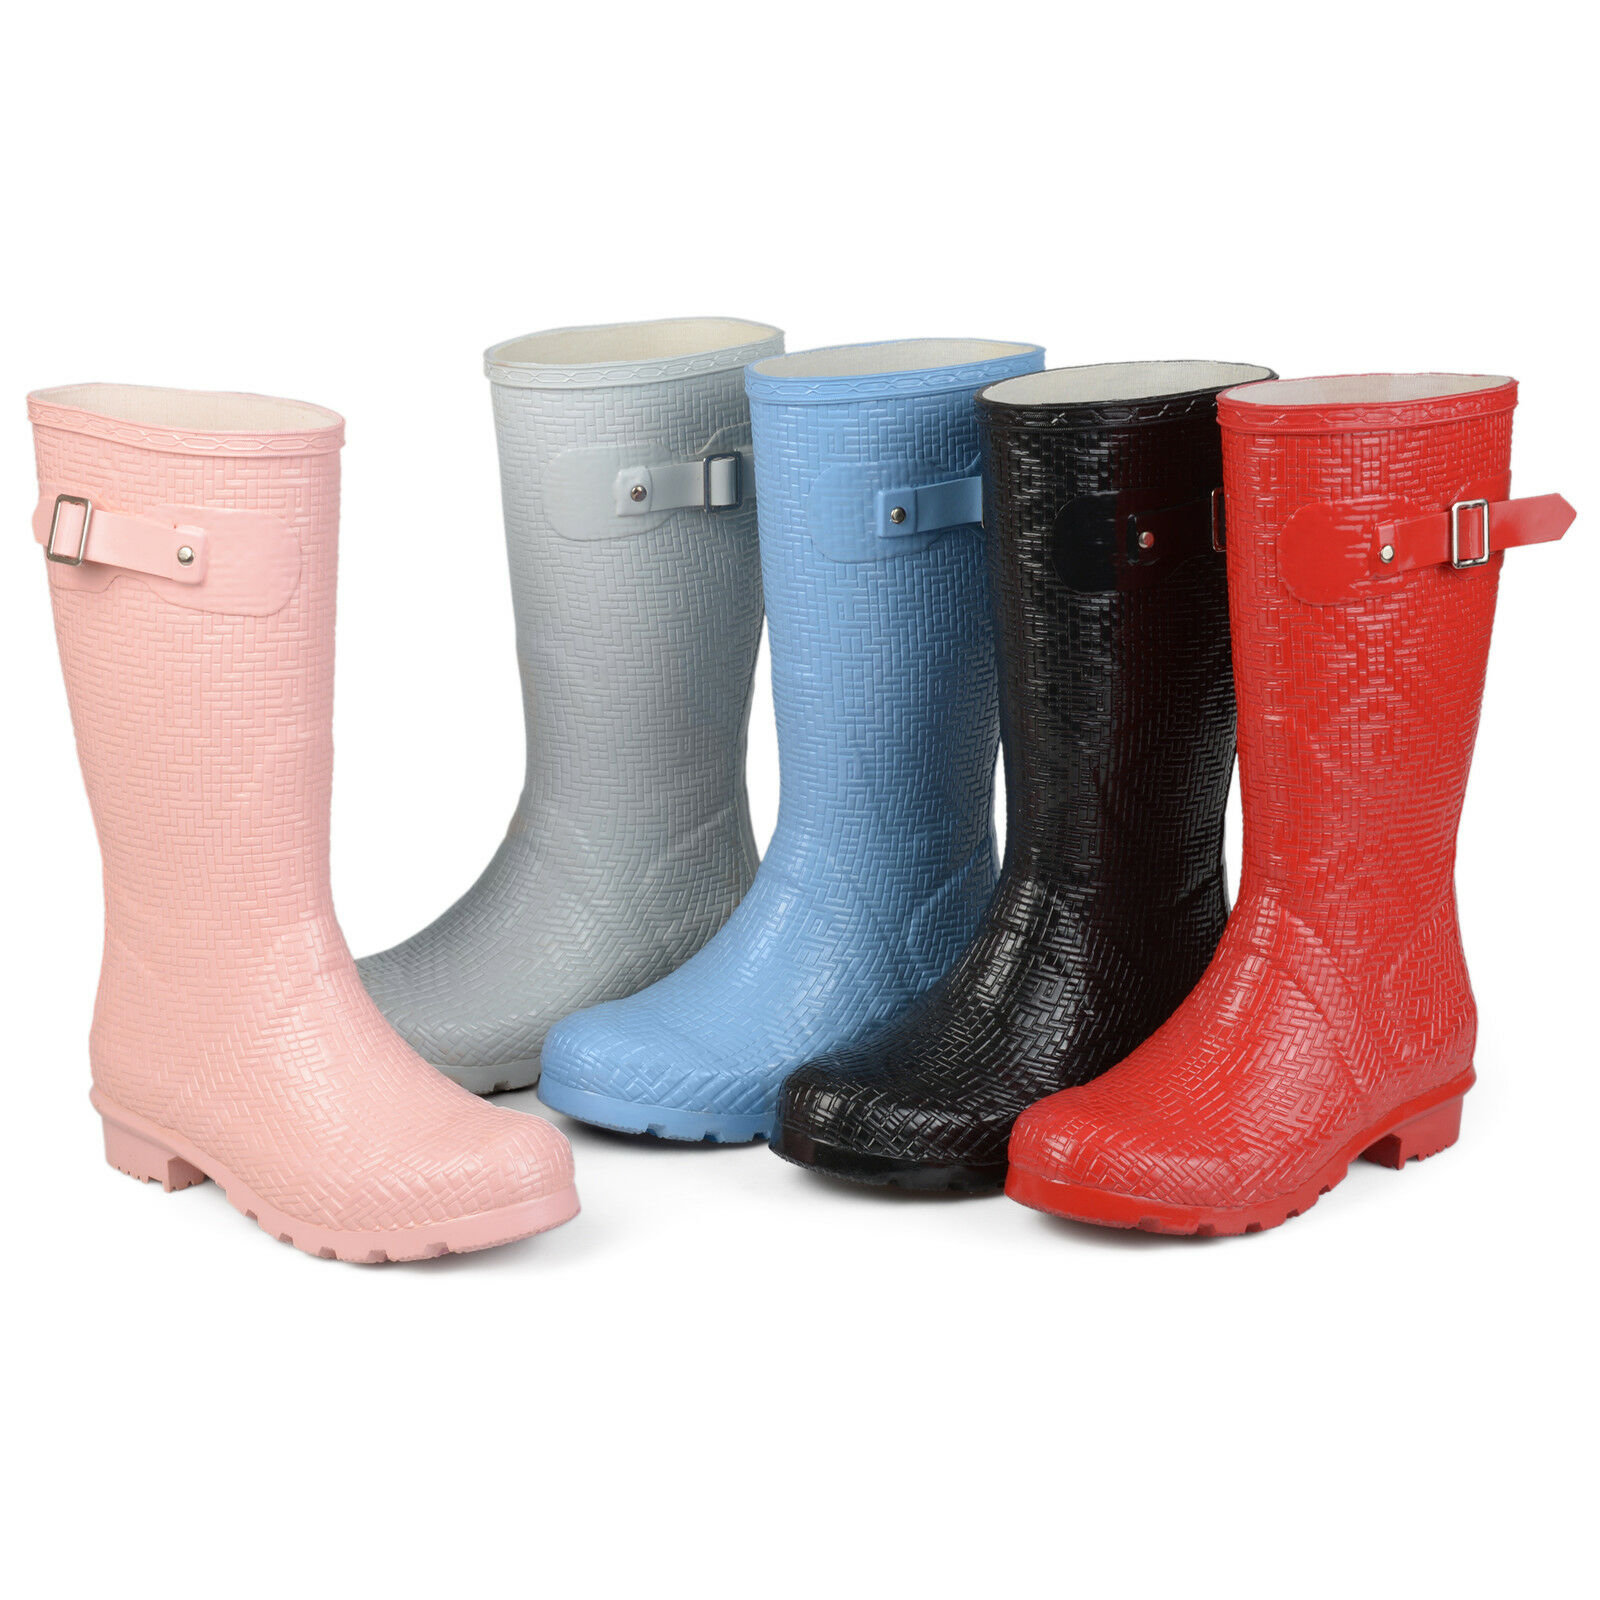 Brinley Co Womens Drench Midcalf Textured Basket weave Rubber Rainboots New